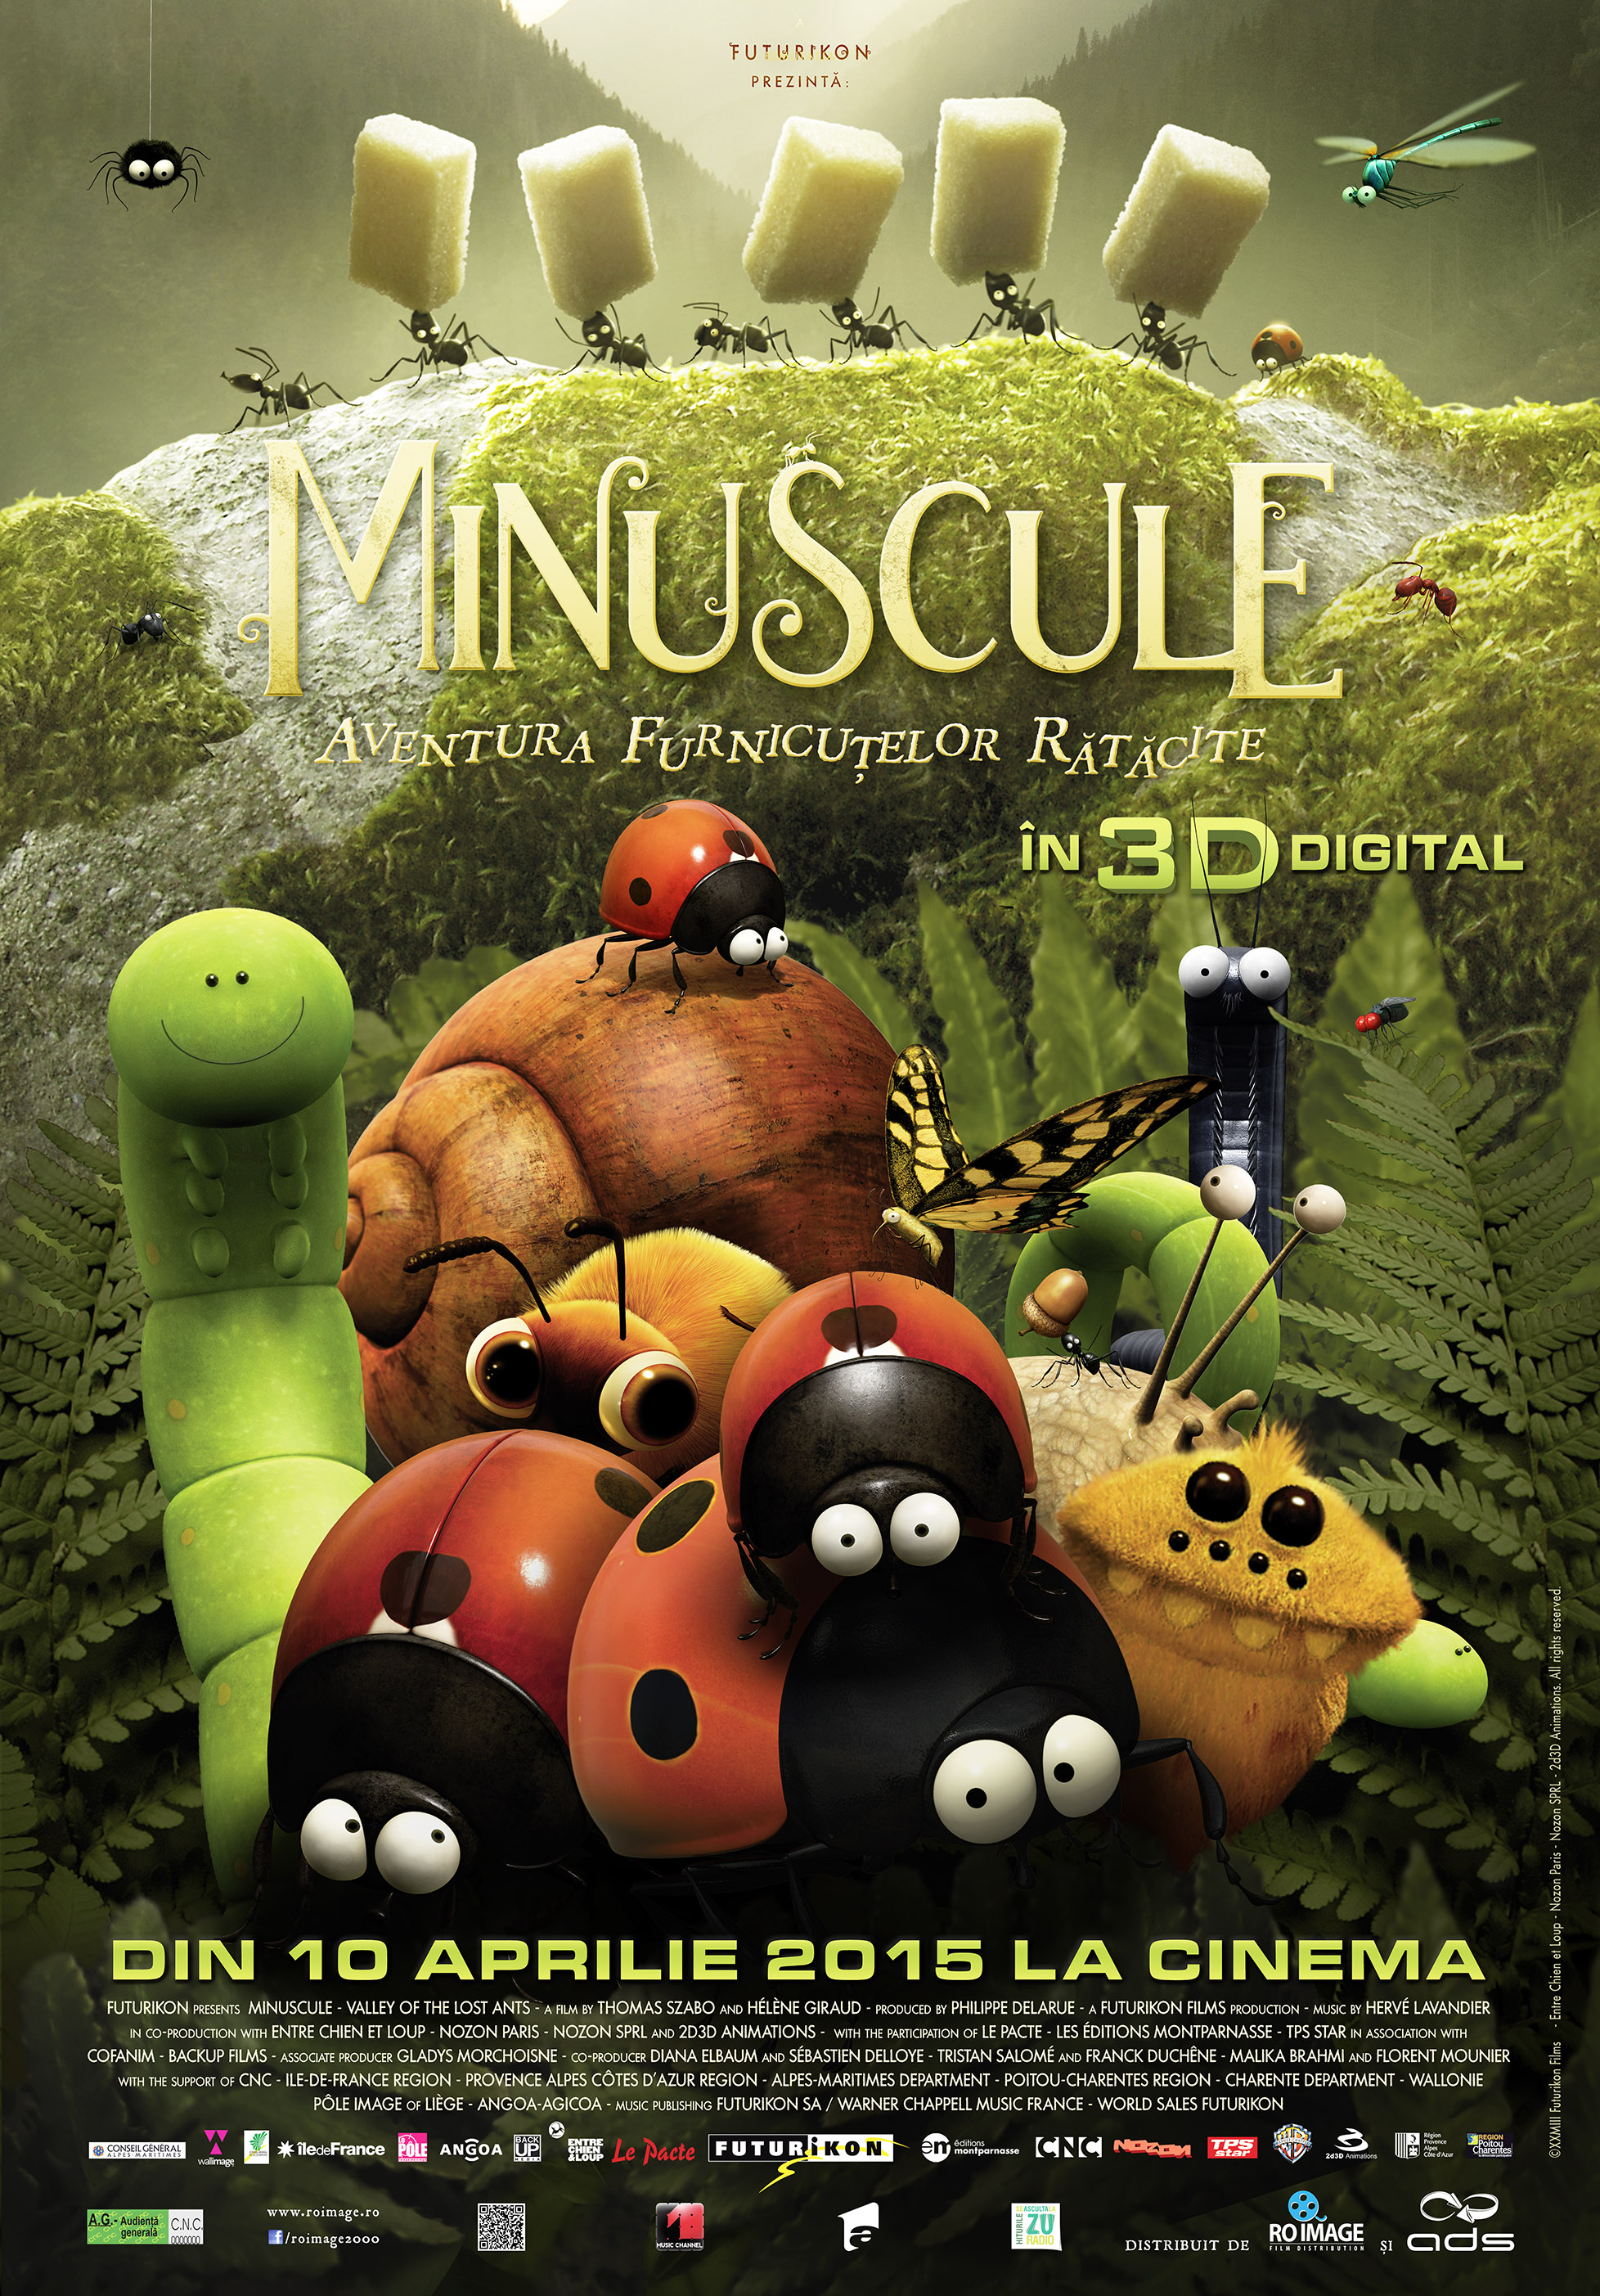 Minuscule: Aventura furnicutelor ratacite – 3D Dublat / Minuscule: Valley of the Lost Ants - 3D (Premiera)